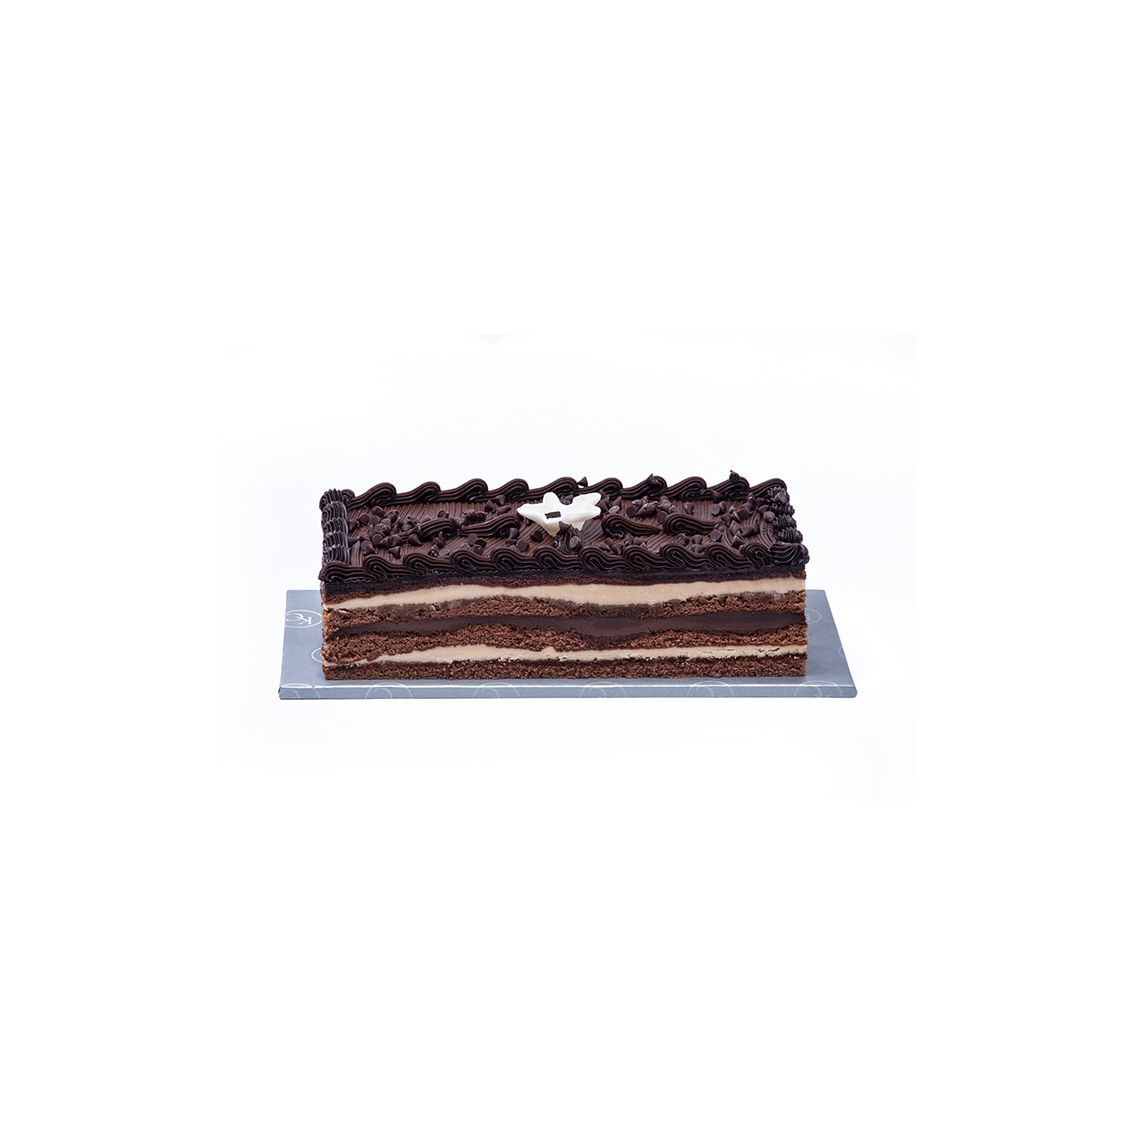 Kitchen Cuisine Default Category Chocolate Opera Cake